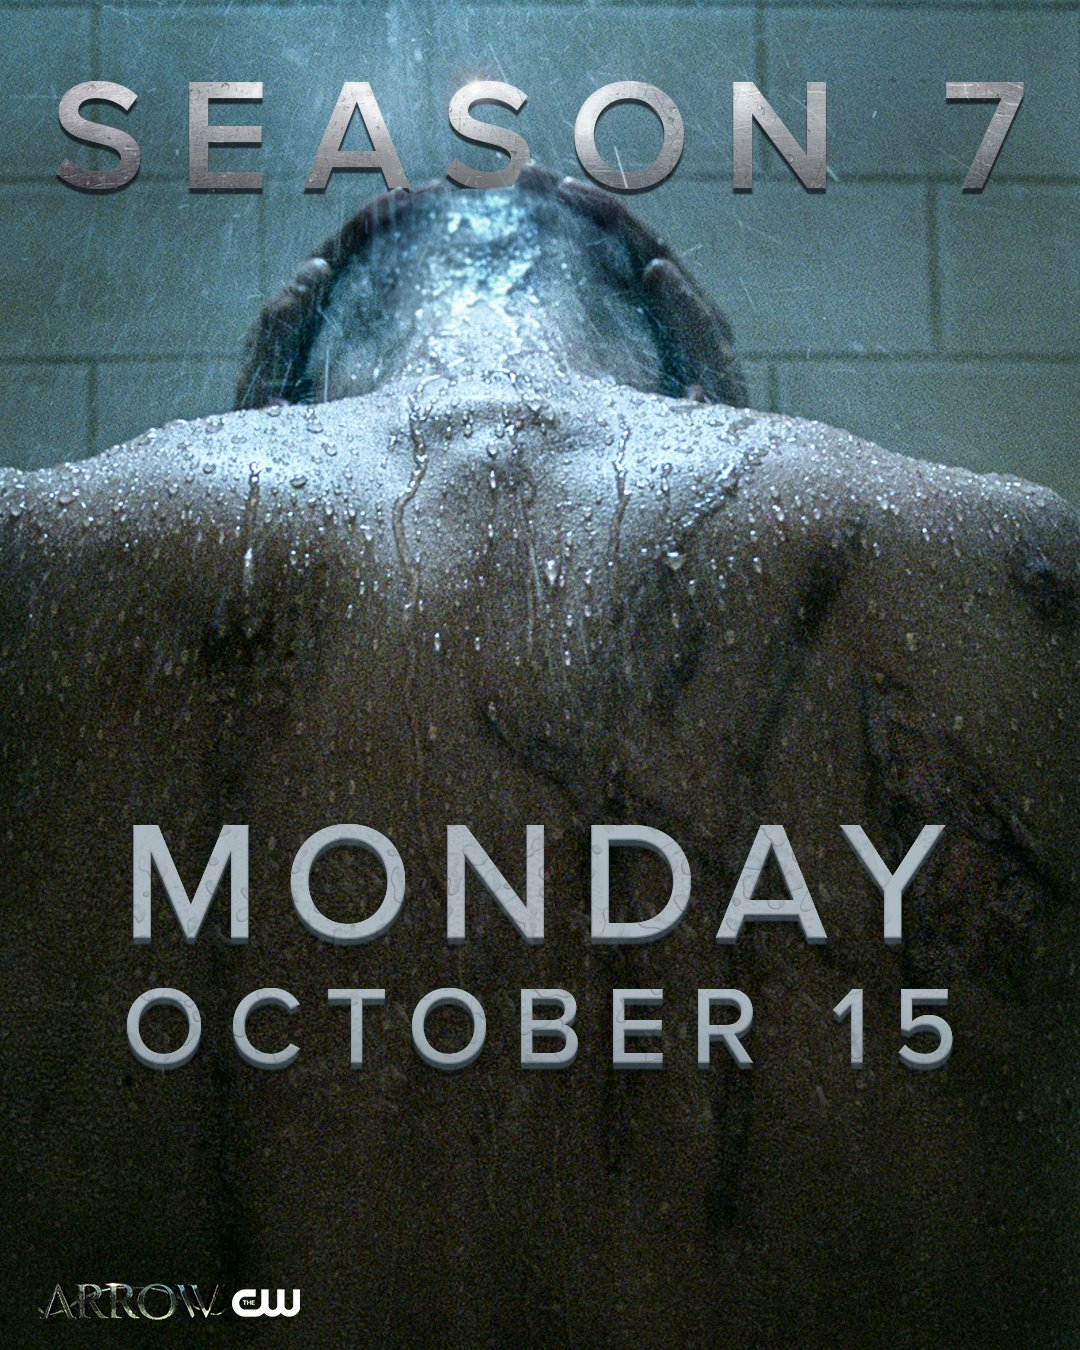 Seeking redemption this fall. Catch up now: https://t.co/EGf9FCR8fu https://t.co/ZxJ1p14NFN